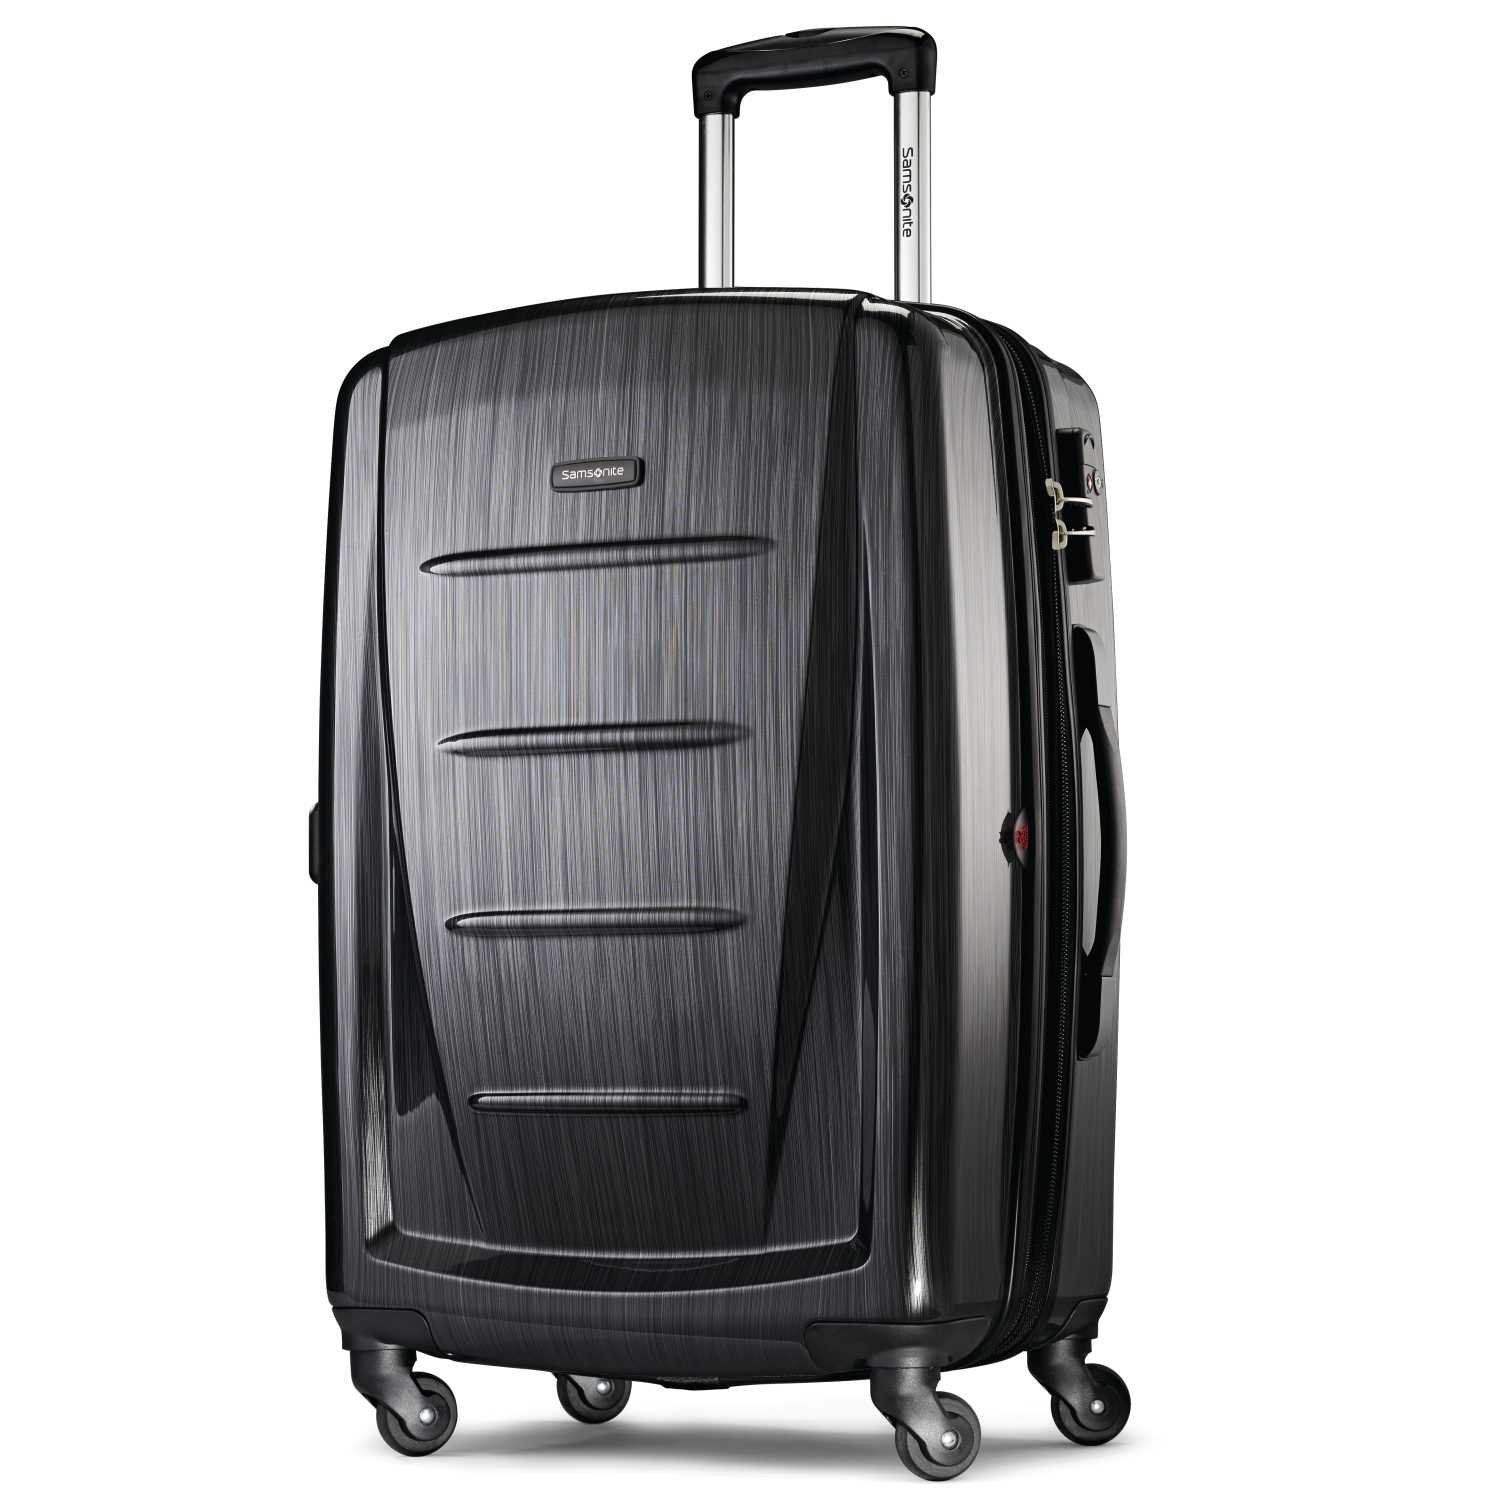 69bfd9c4c96 Best Overall  Samsonite Winfield 2 Hard-Side 28-Inch Luggage